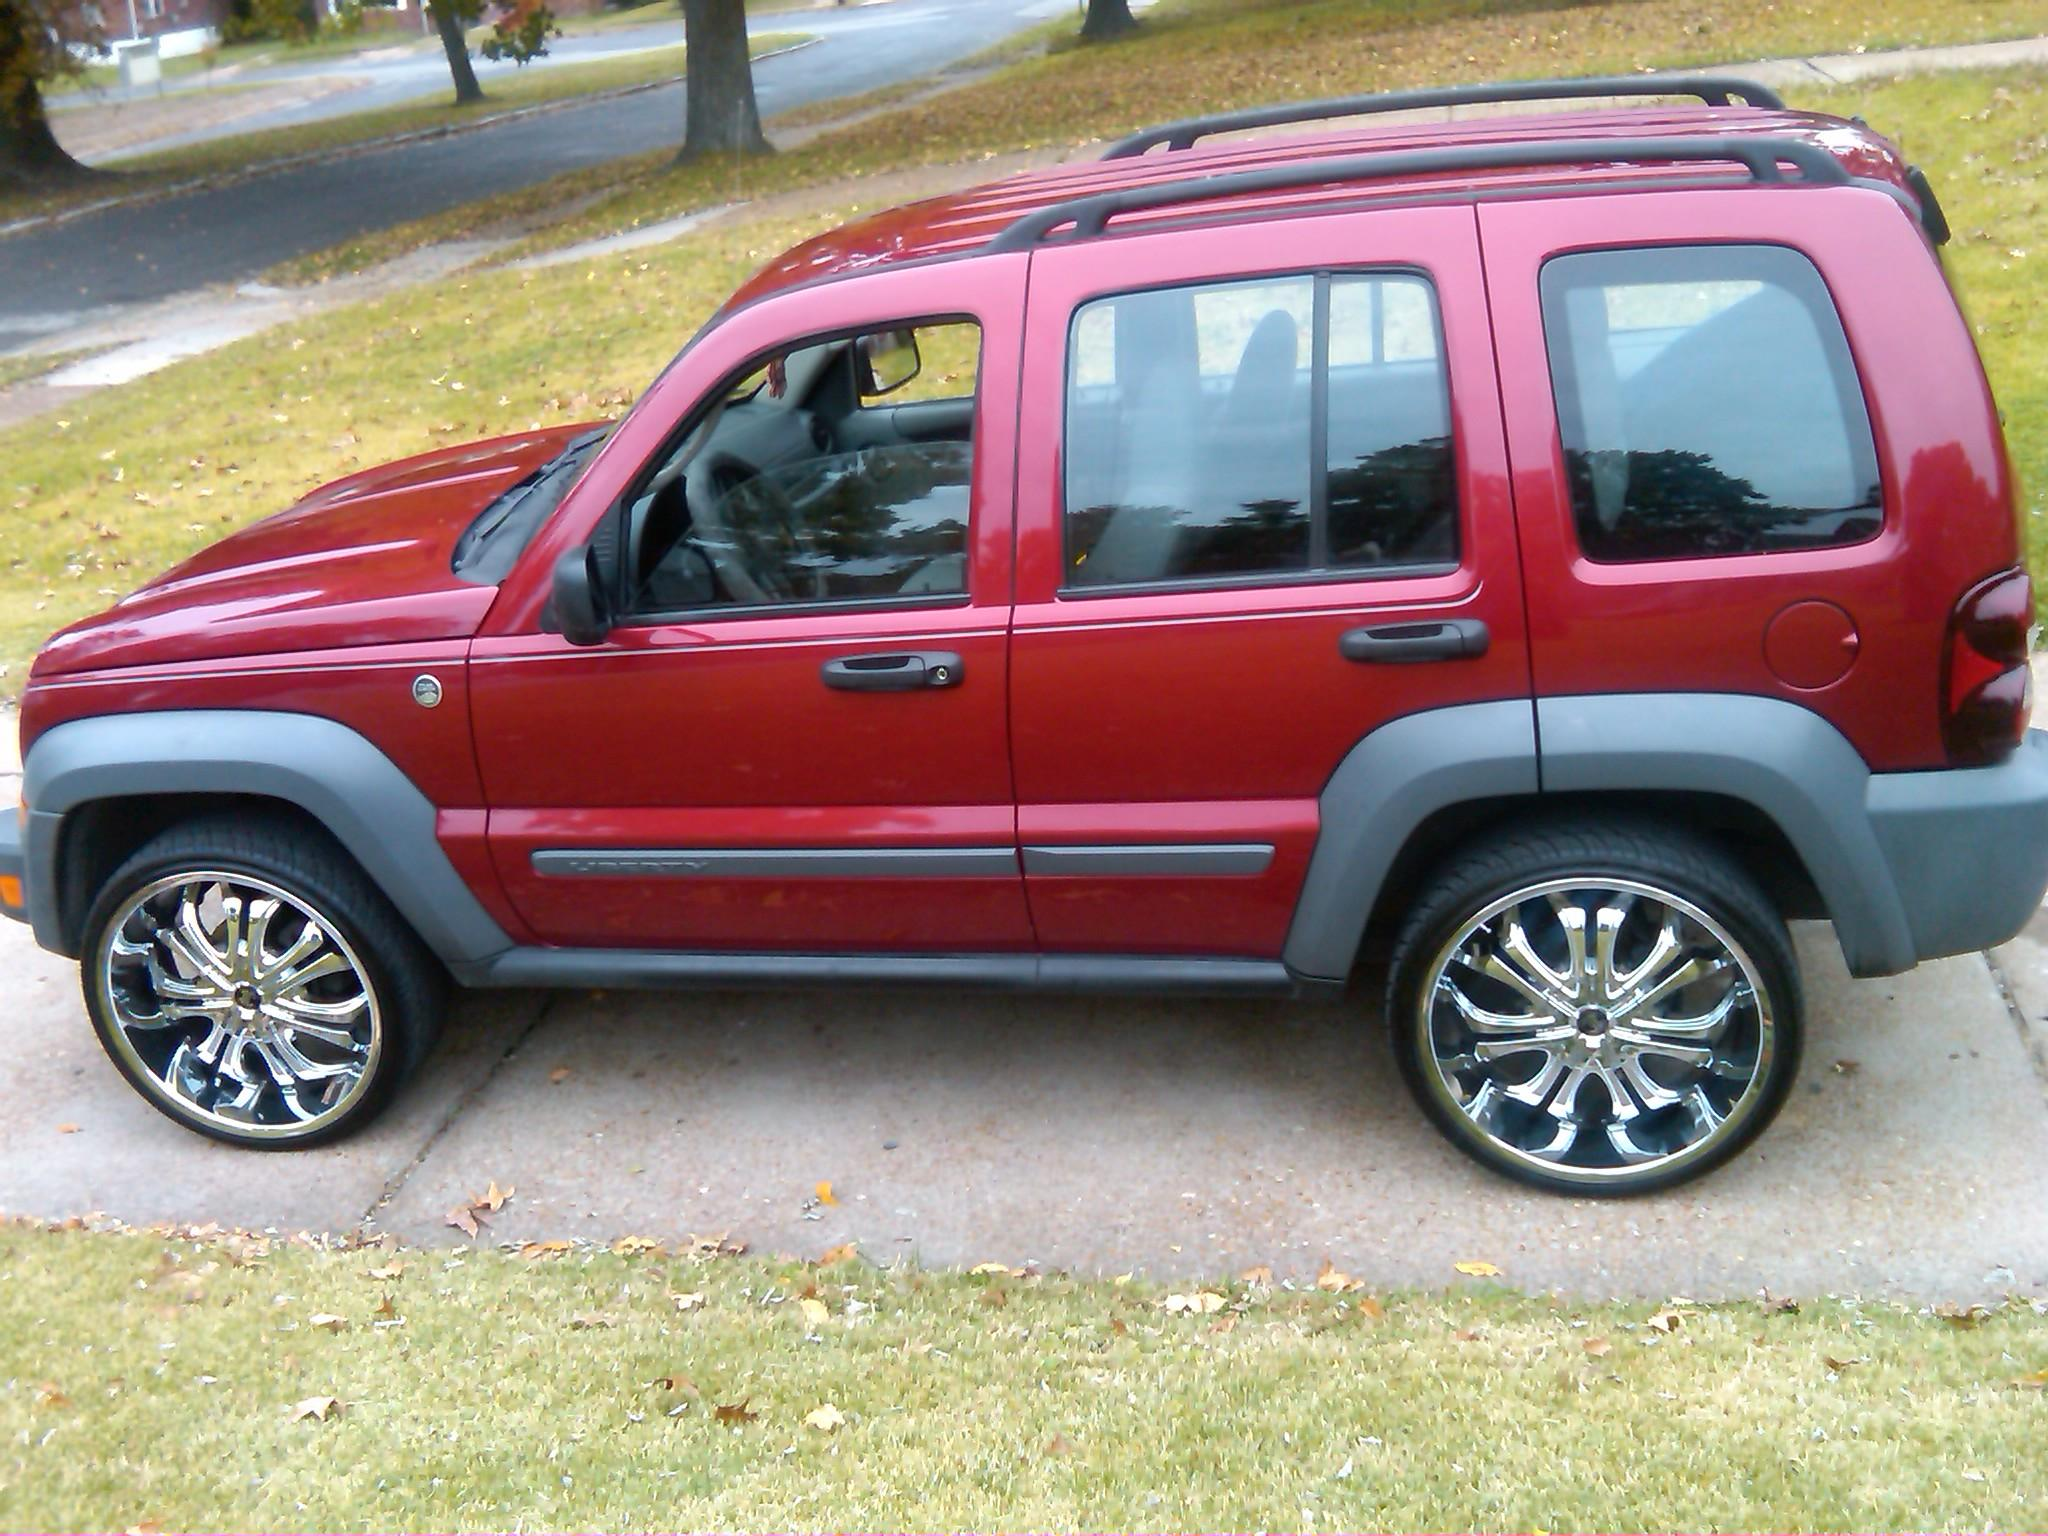 mr dell 2006 Jeep Liberty